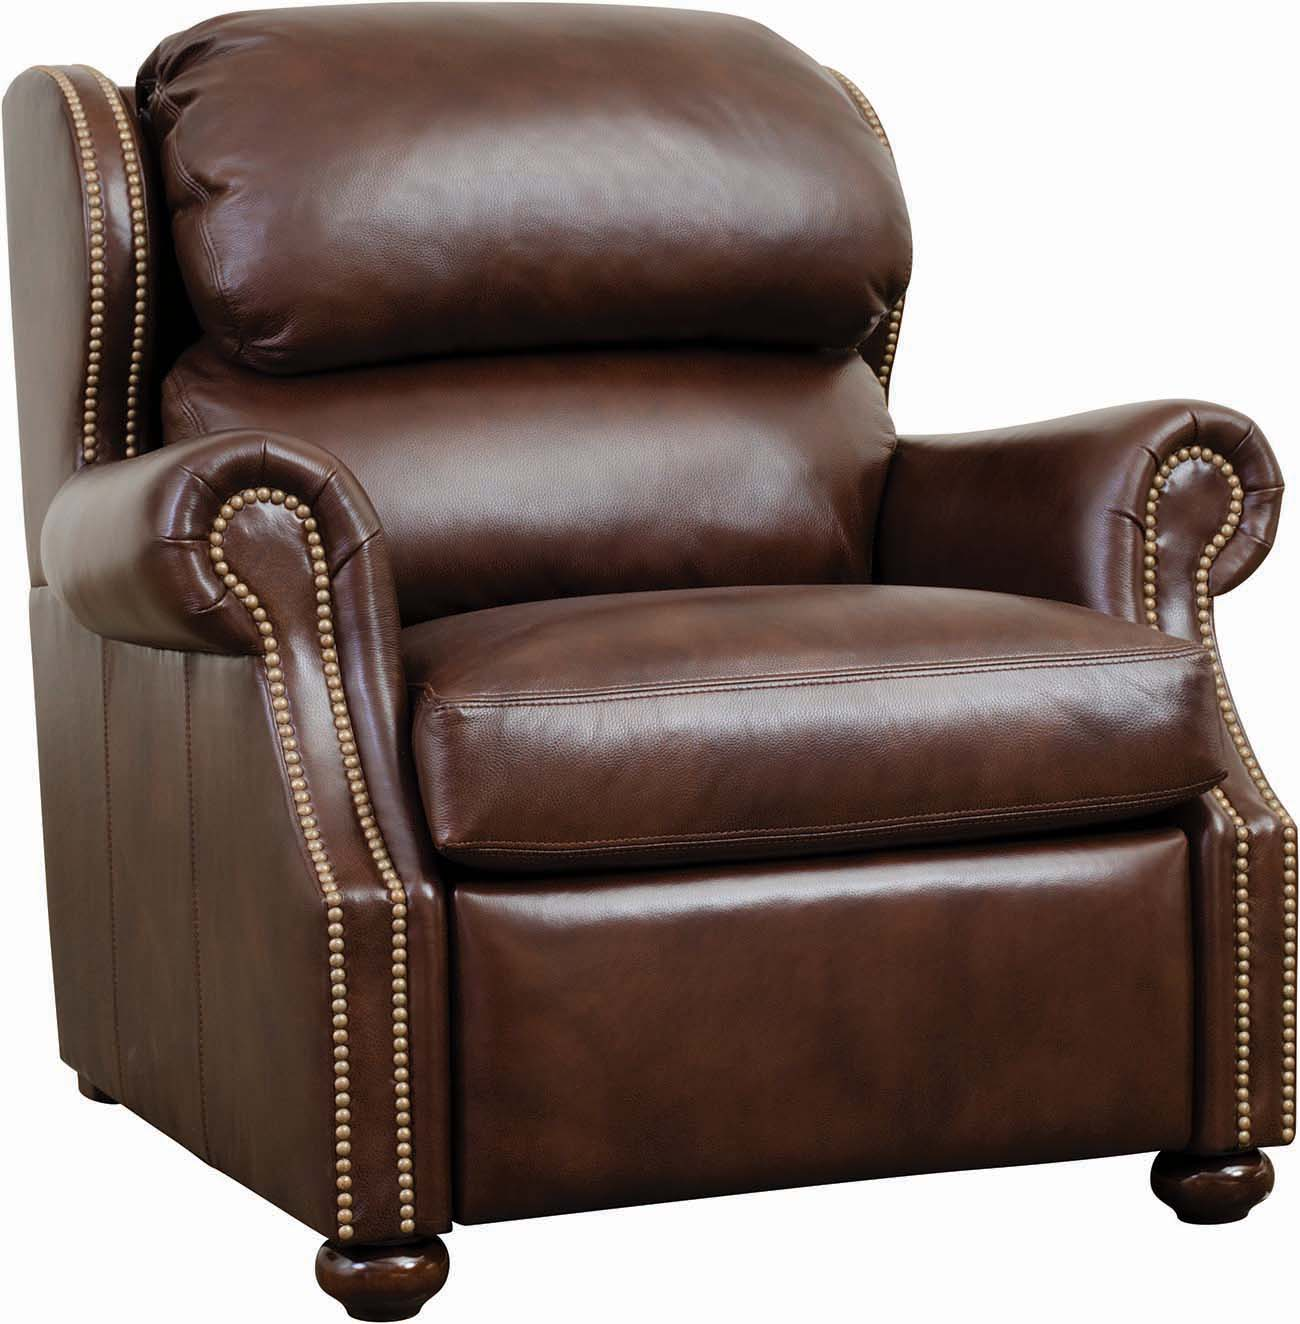 Bow Arm Morris Recliner Mission Collection Stickley Furniture